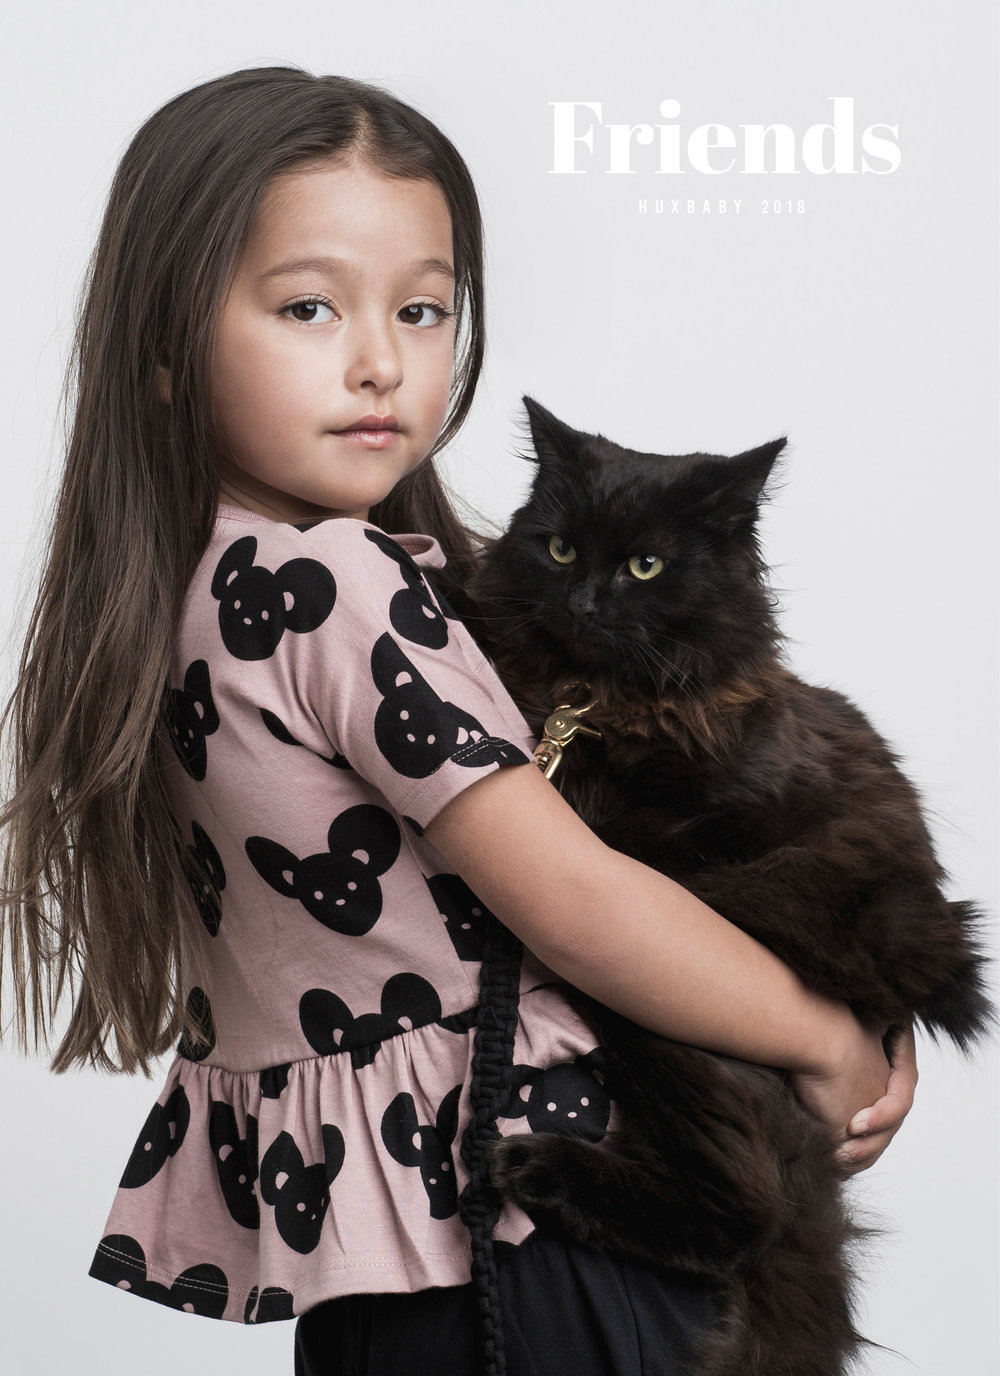 Huxbaby-Childrens-Clothing-Campaign-Friends-by-photographer-Nick-Walters-at-Lumi-Studio-in-Melbourne.jpg